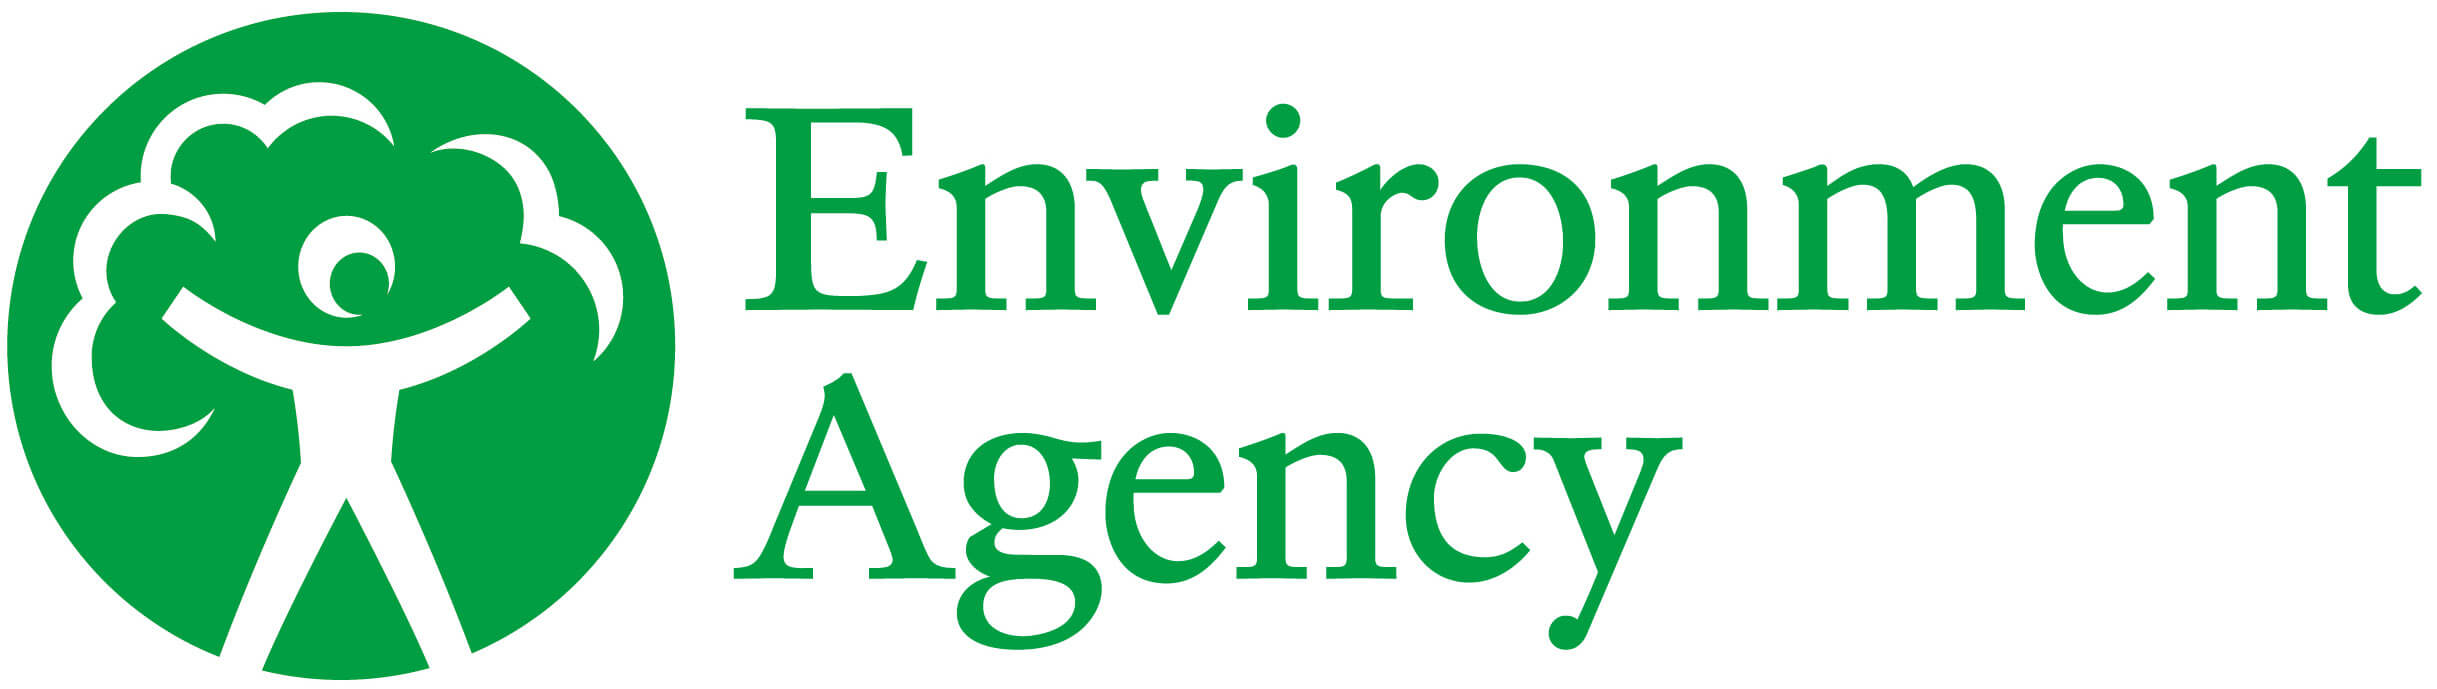 Environmental Agency waste carrier Essex